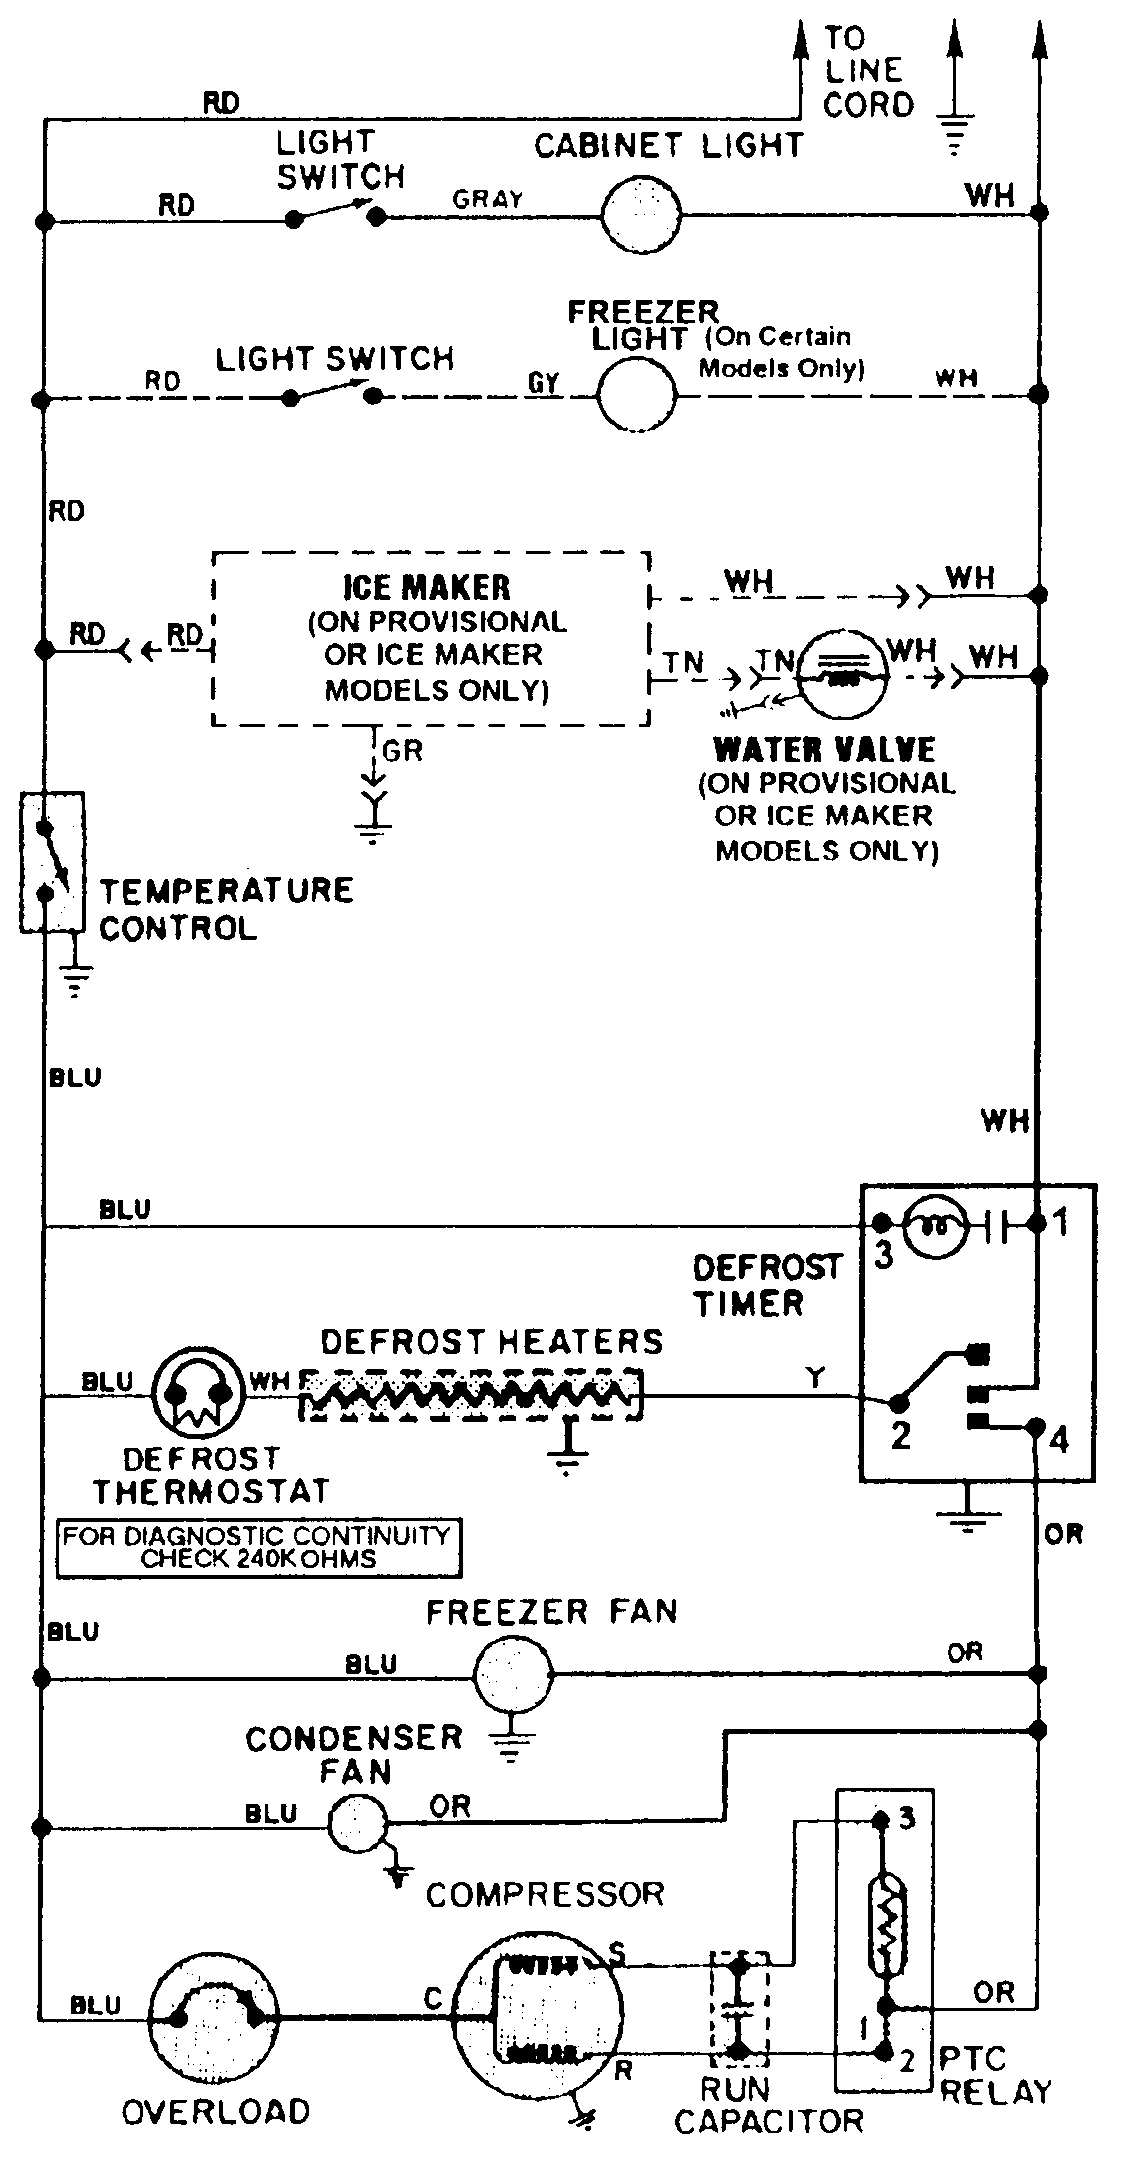 Magic Chef Refrigerator Wiring Diagram